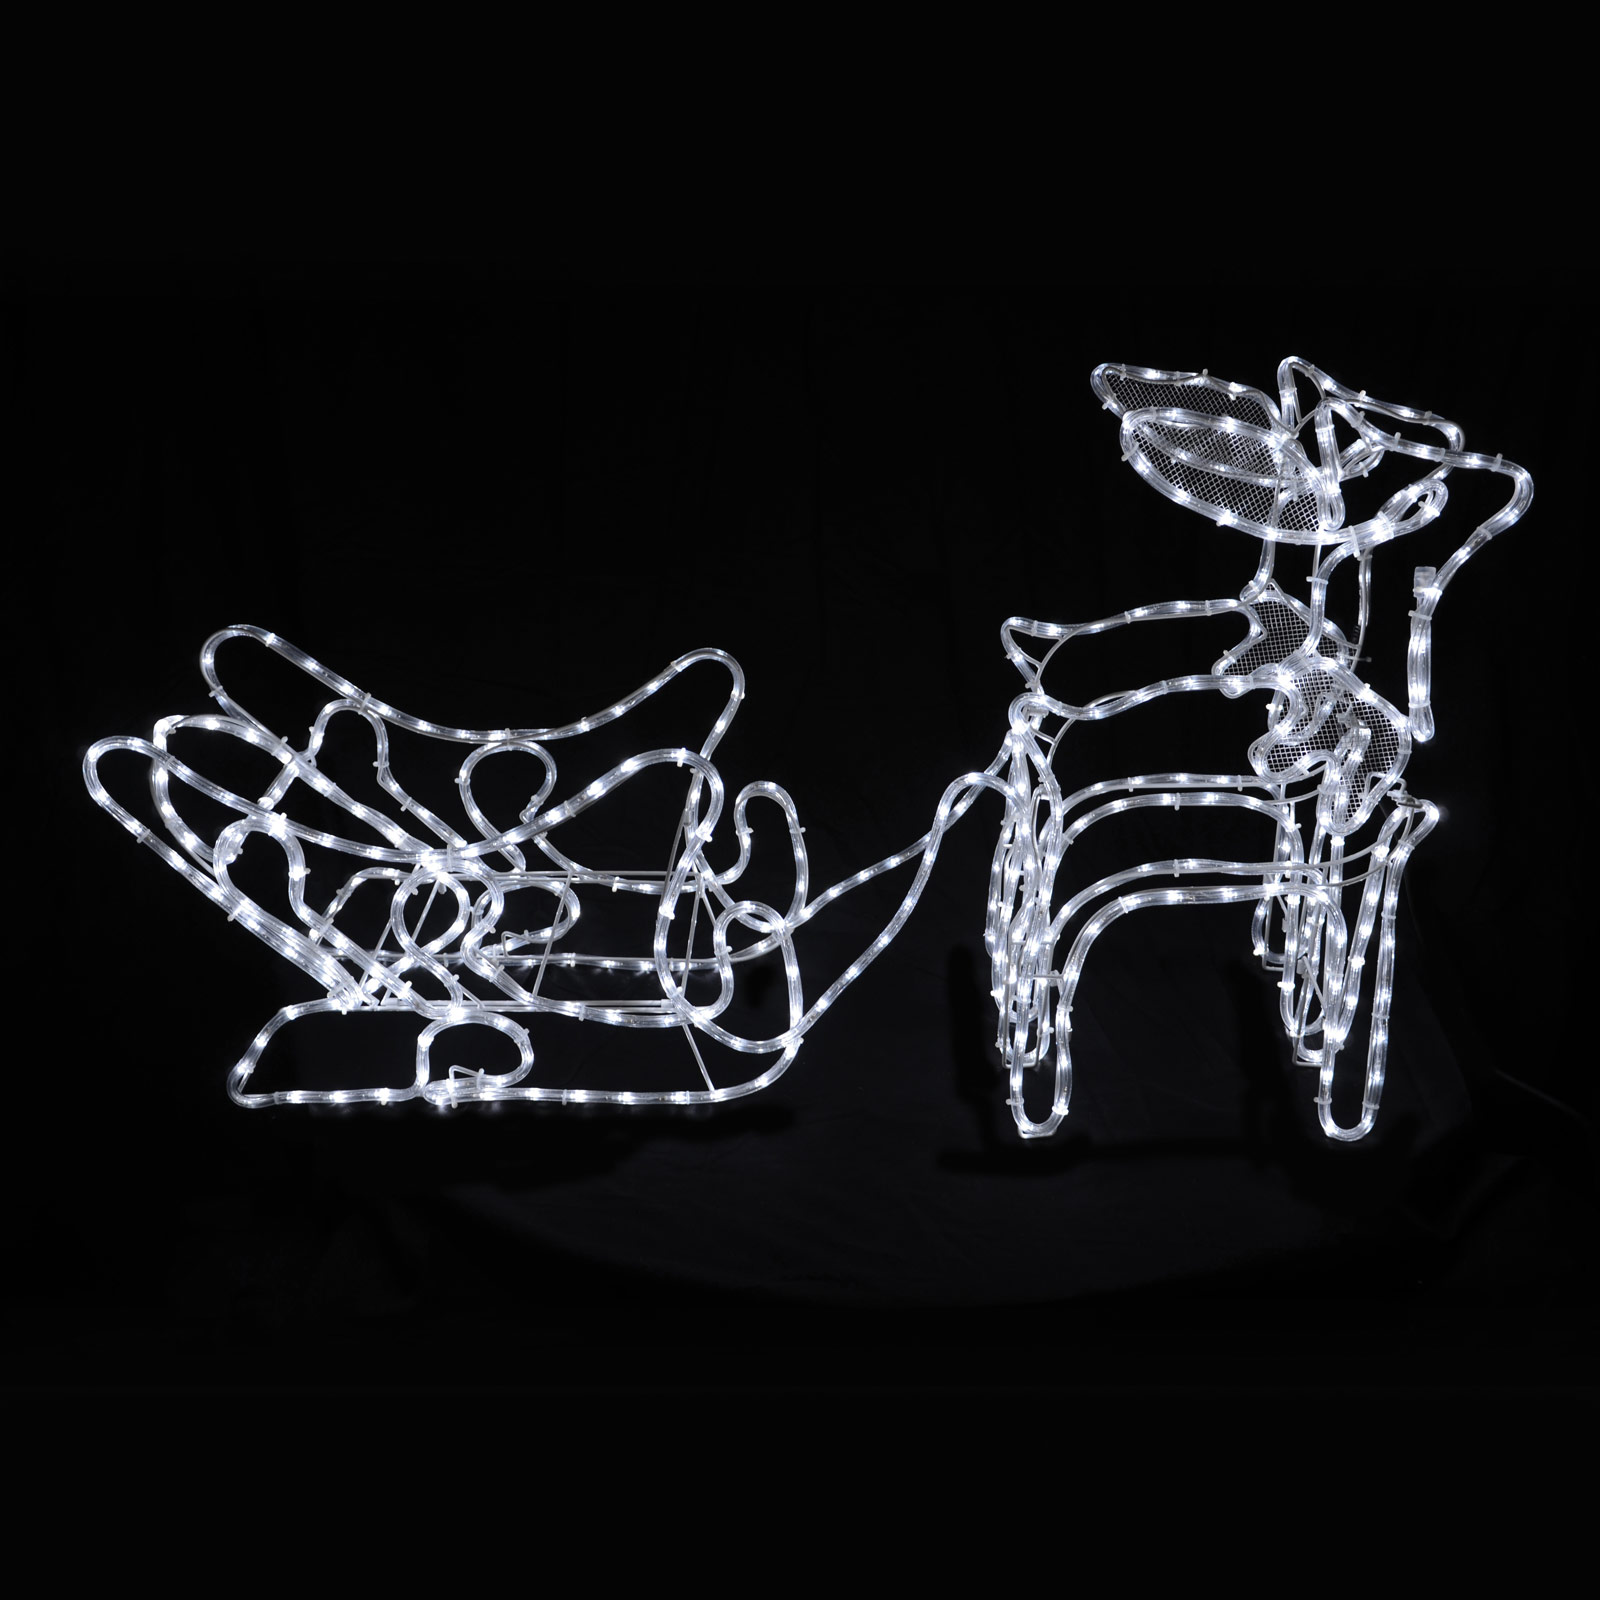 2 Reindeer & Sleigh White LED Rope Light Christmas Standing Decoration Outdoor